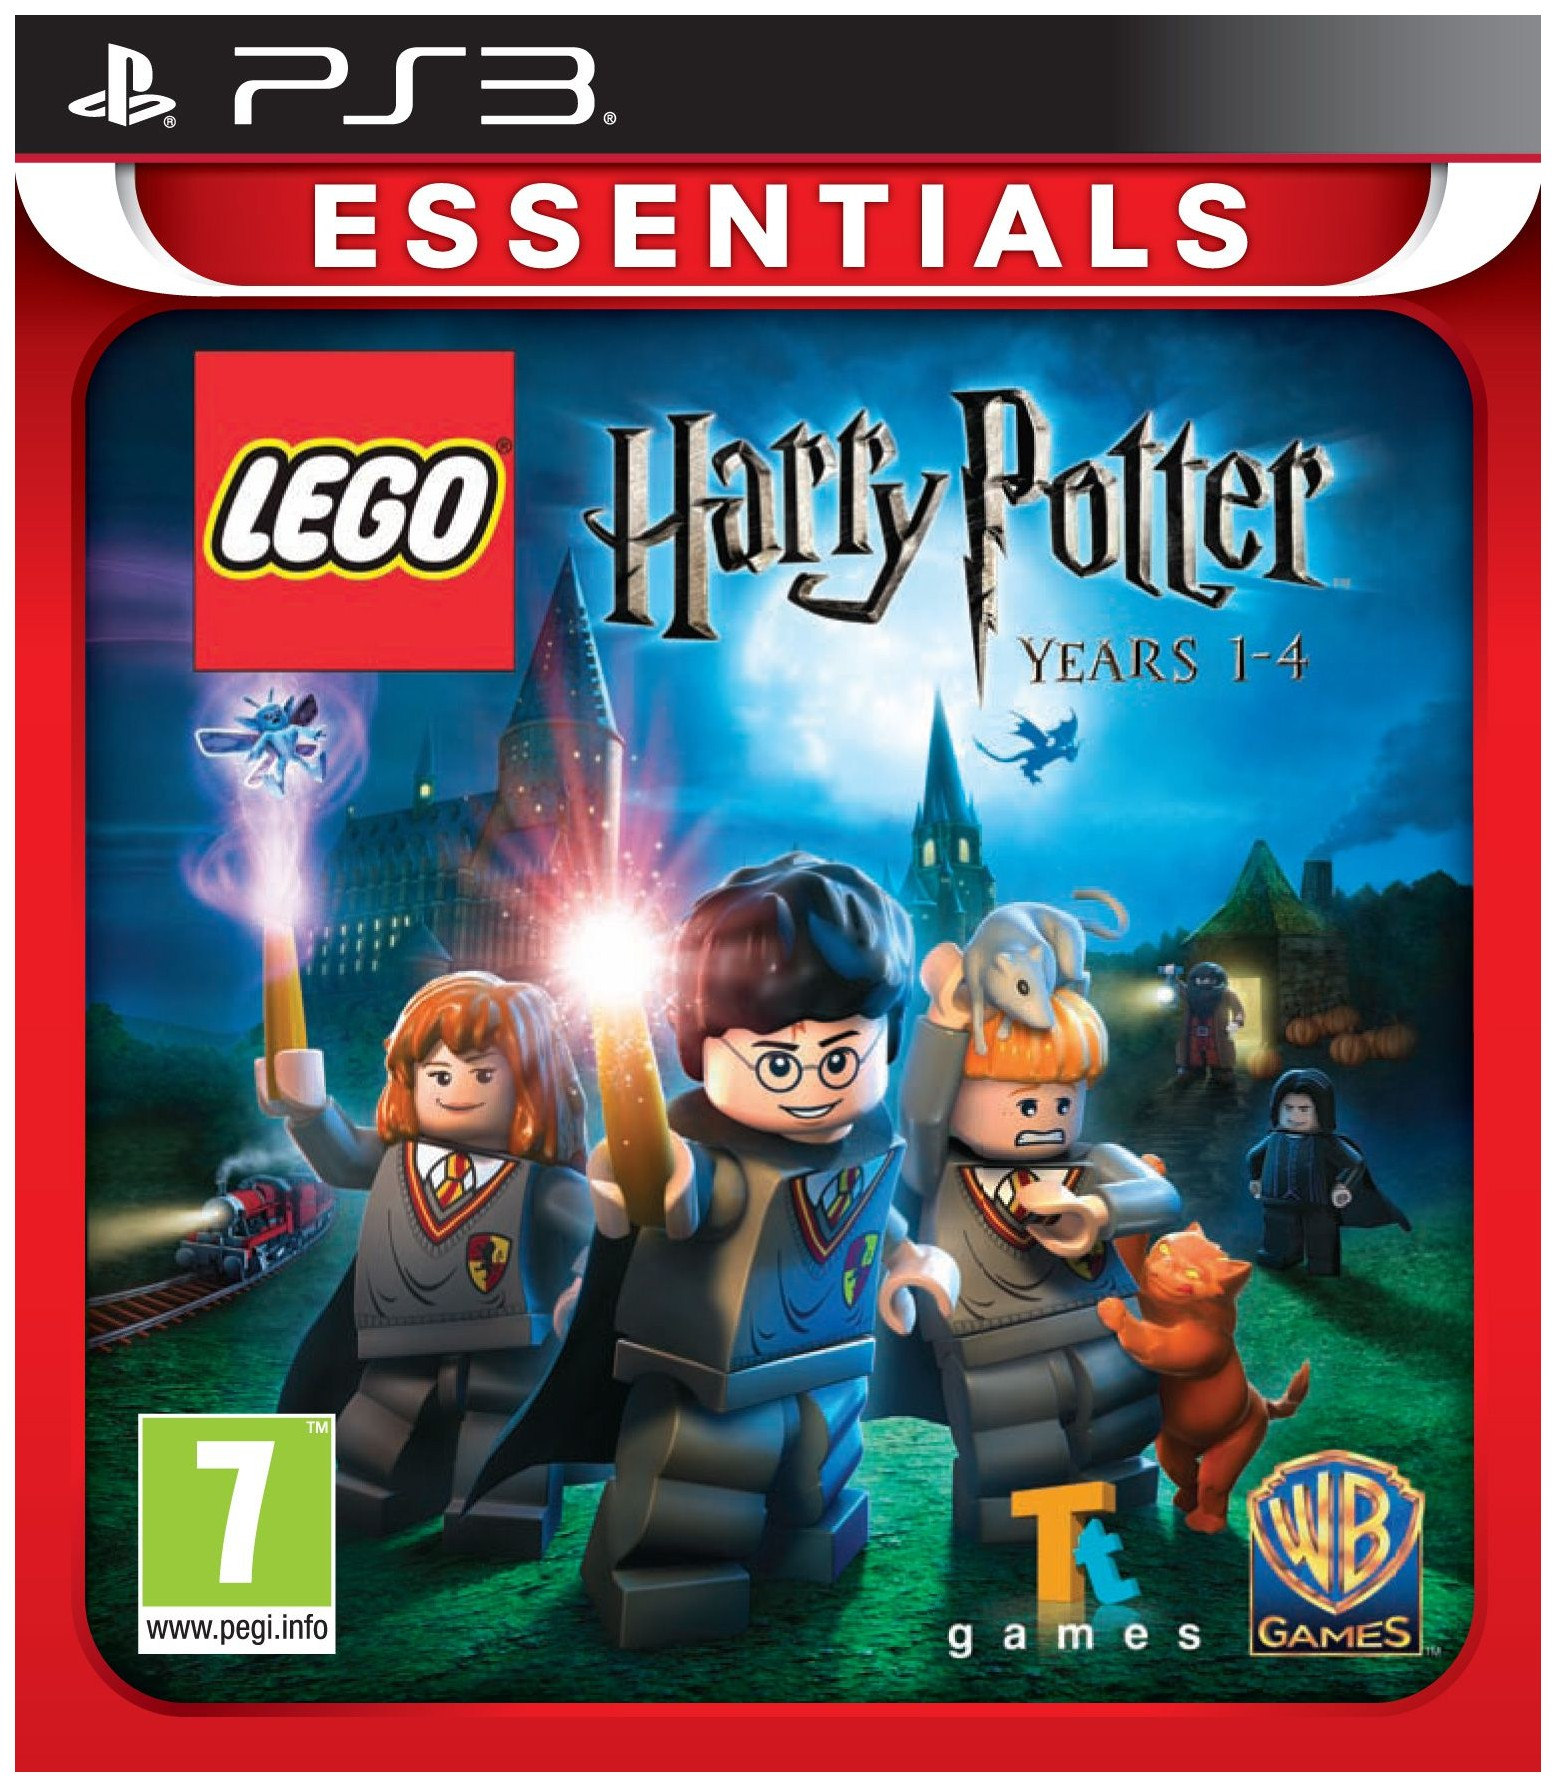 WARNER BROTHERS LEGO HARRY POTTER: YEARS 1-4 ESSENTIALS